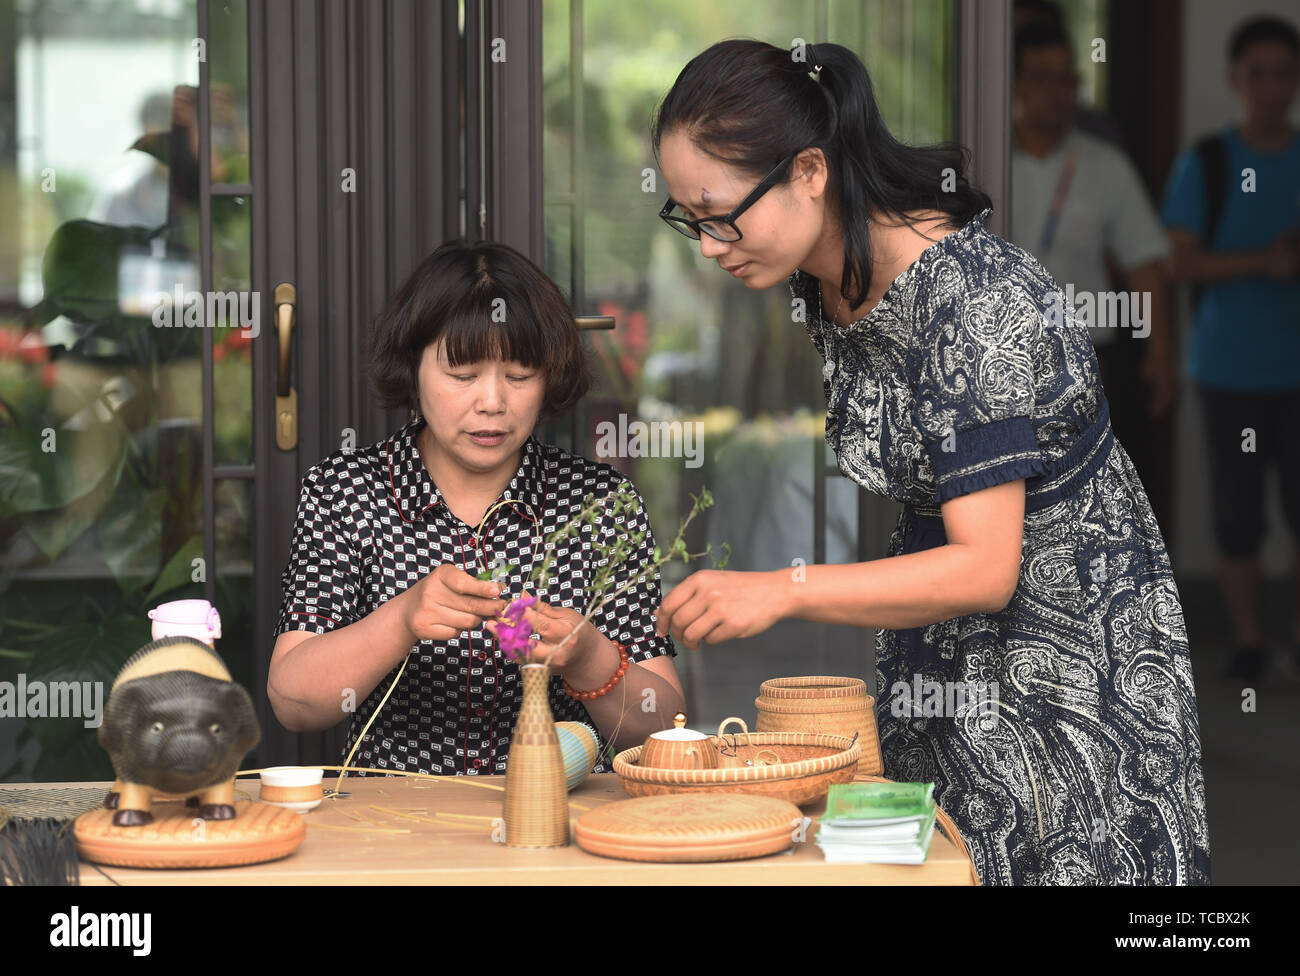 Beijing, China. 6th June, 2019. Visitors learn about bamboo weaving during the 'Zhejiang Day' theme event at the Beijing International Horticultural Exhibition in Yanqing District, Beijing, capital of China, June 6, 2019. The Beijing International Horticultural Exhibition will display Zhejiang's achievements in ecological development with a Zhejiang Day theme event from June 6 to 8. Credit: Ren Chao/Xinhua/Alamy Live News - Stock Image